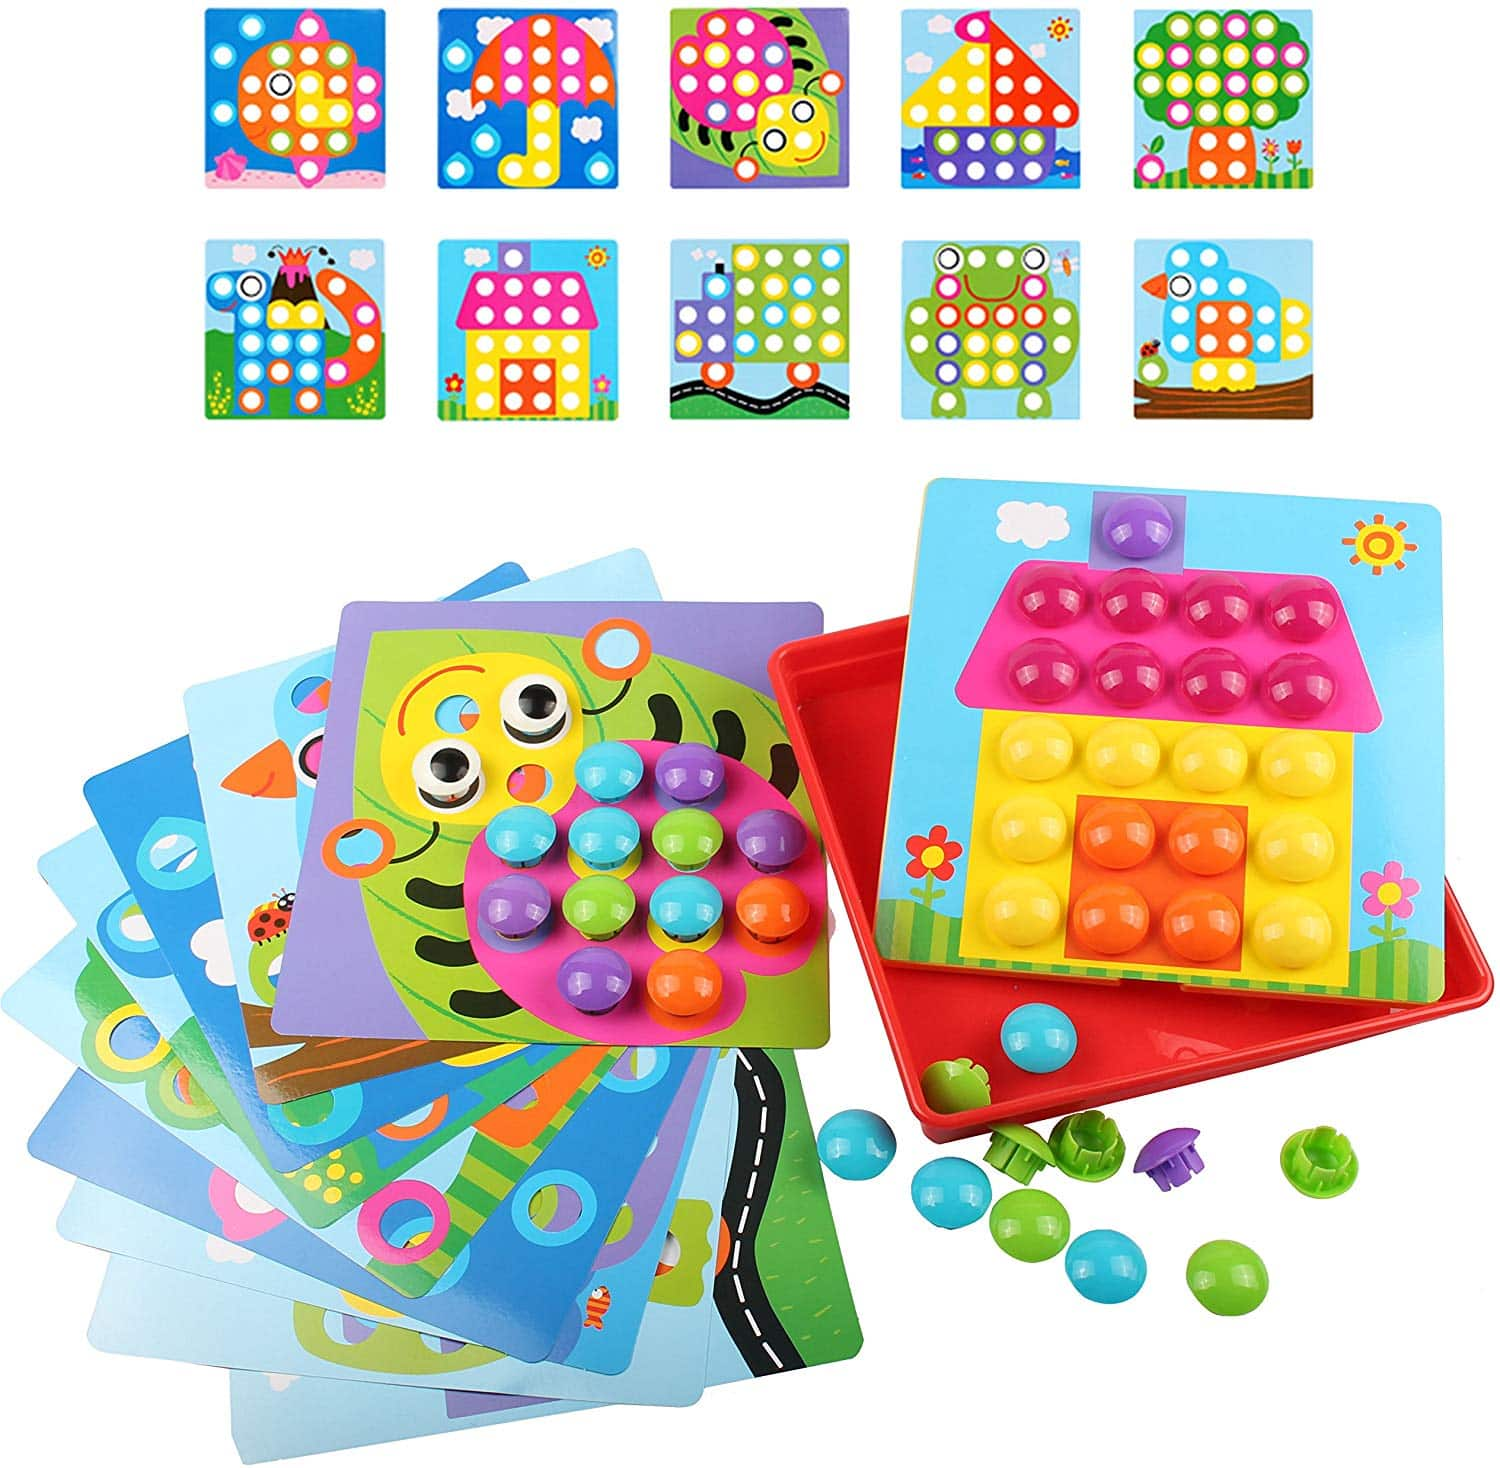 Color Matching Mosaic  Early Learning Toys for Toddlers $9.59